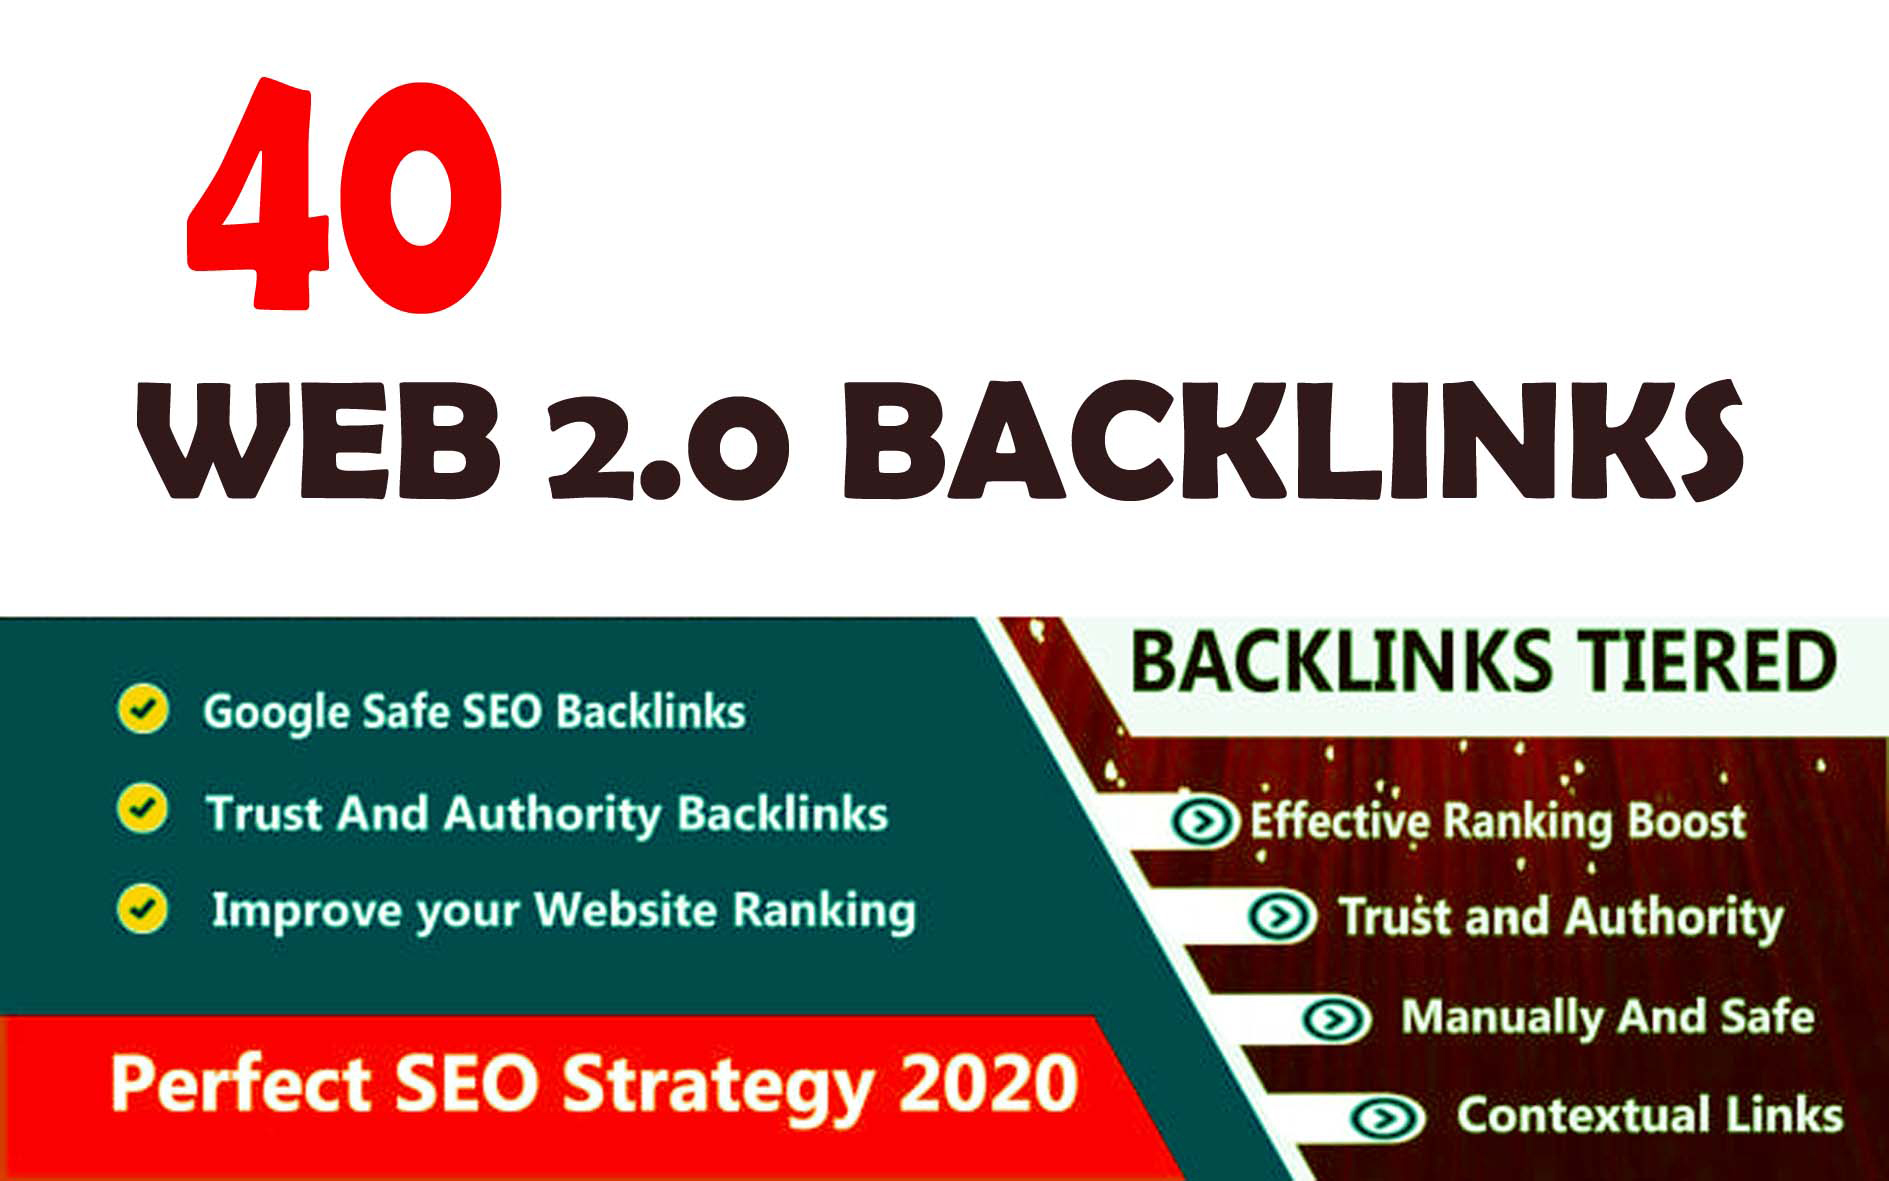 Build 40+ Backlink with 30+ Da 35+ PA DOFOLLOW and Homepage pbn with 40+unique websile link